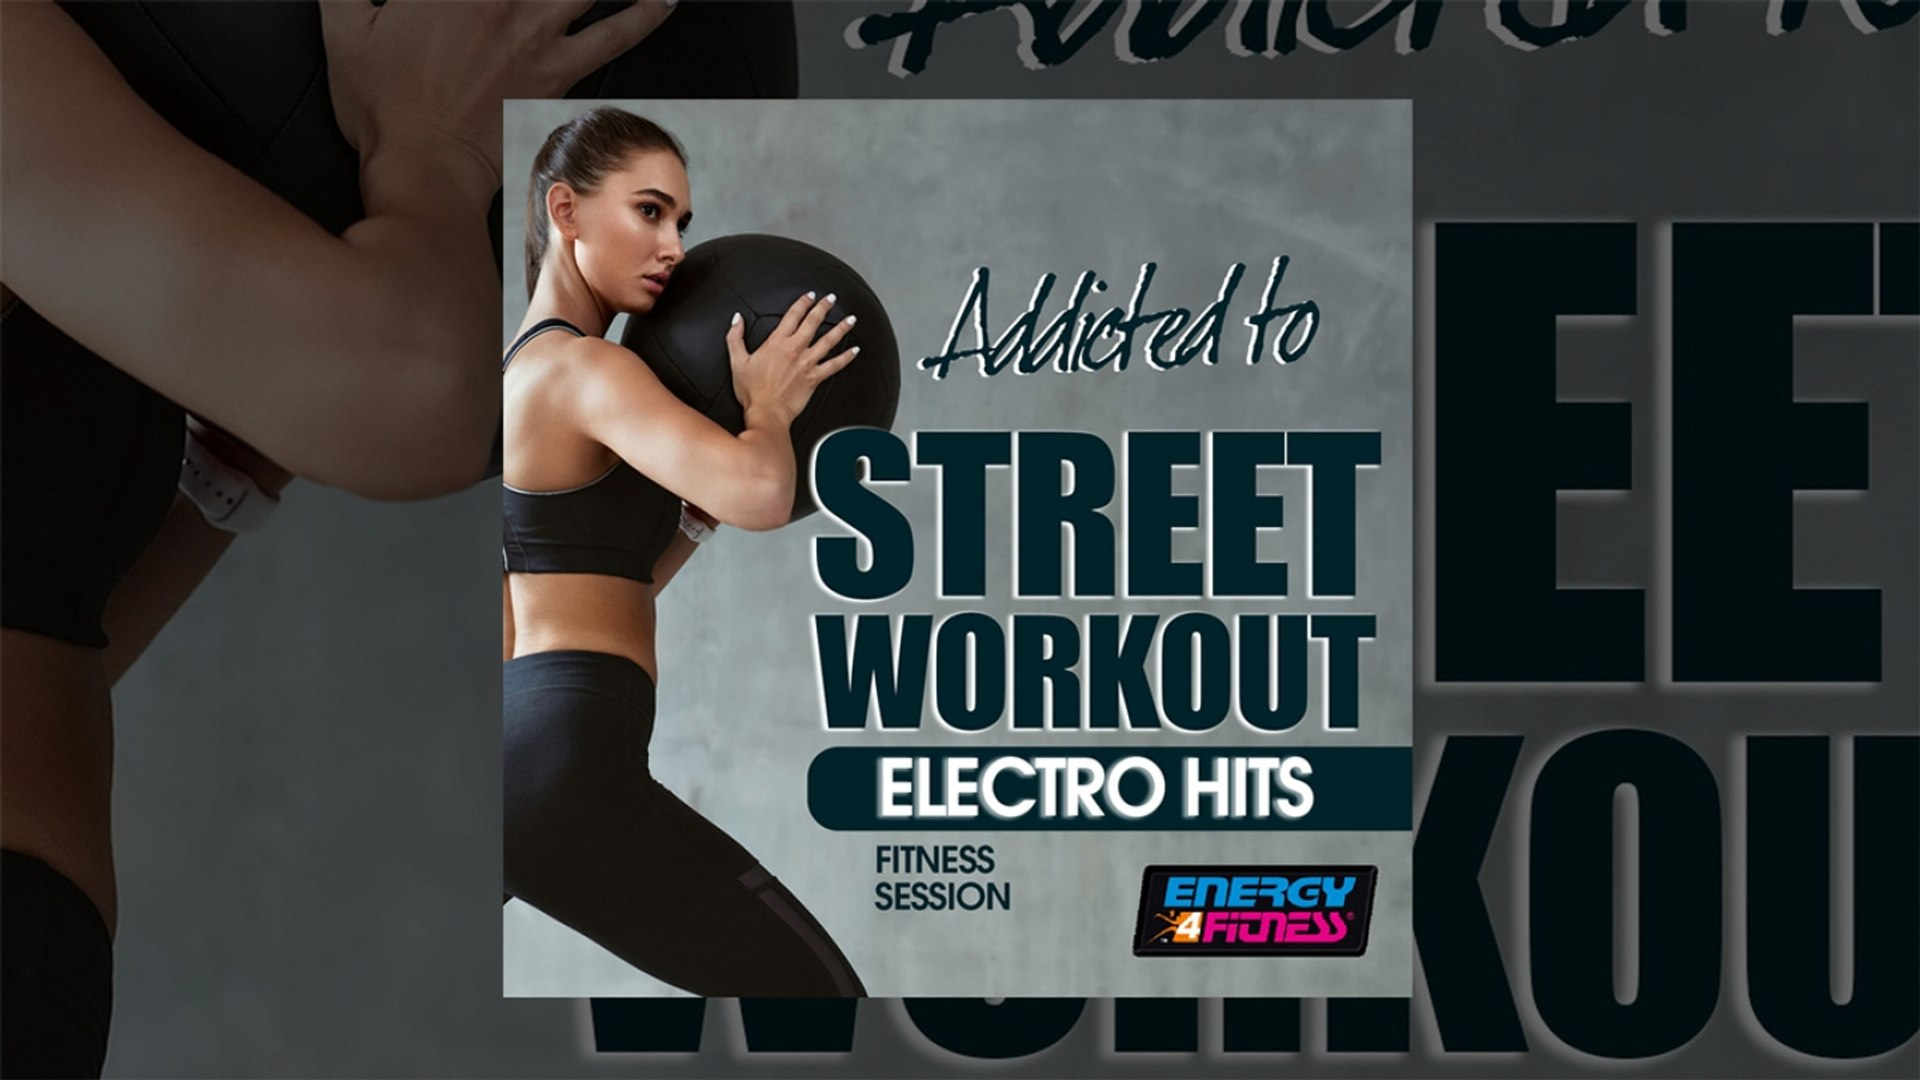 E4F - Addicted To Street Workout Electro Hits Fitness Session - Fitness & Music 2019